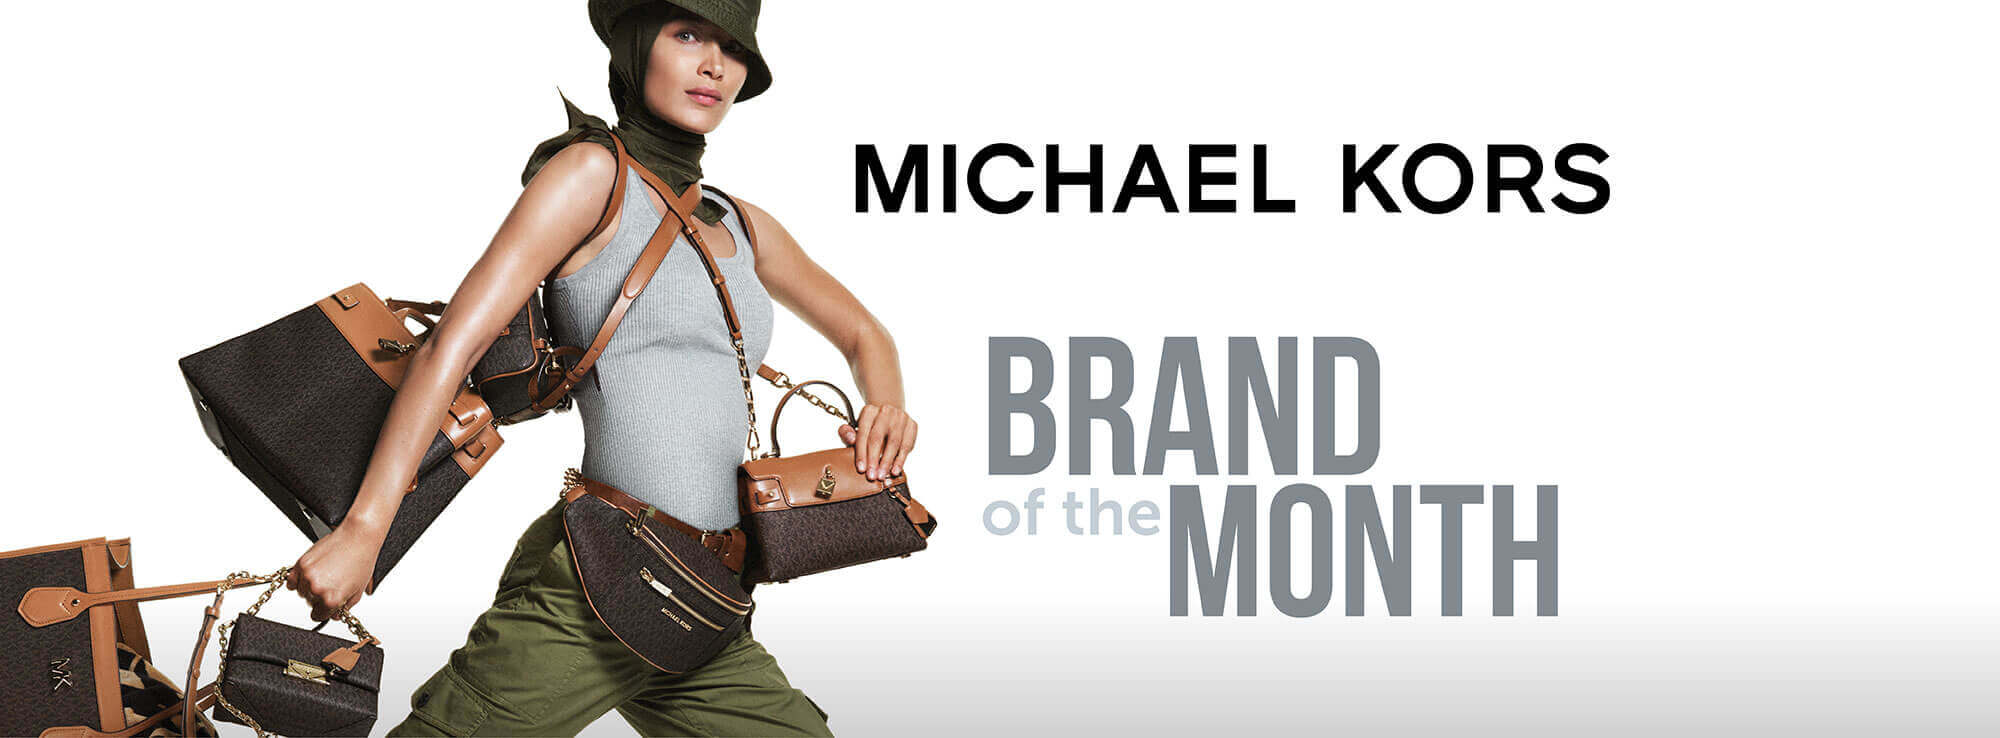 Brand of the Month - Michael Kors